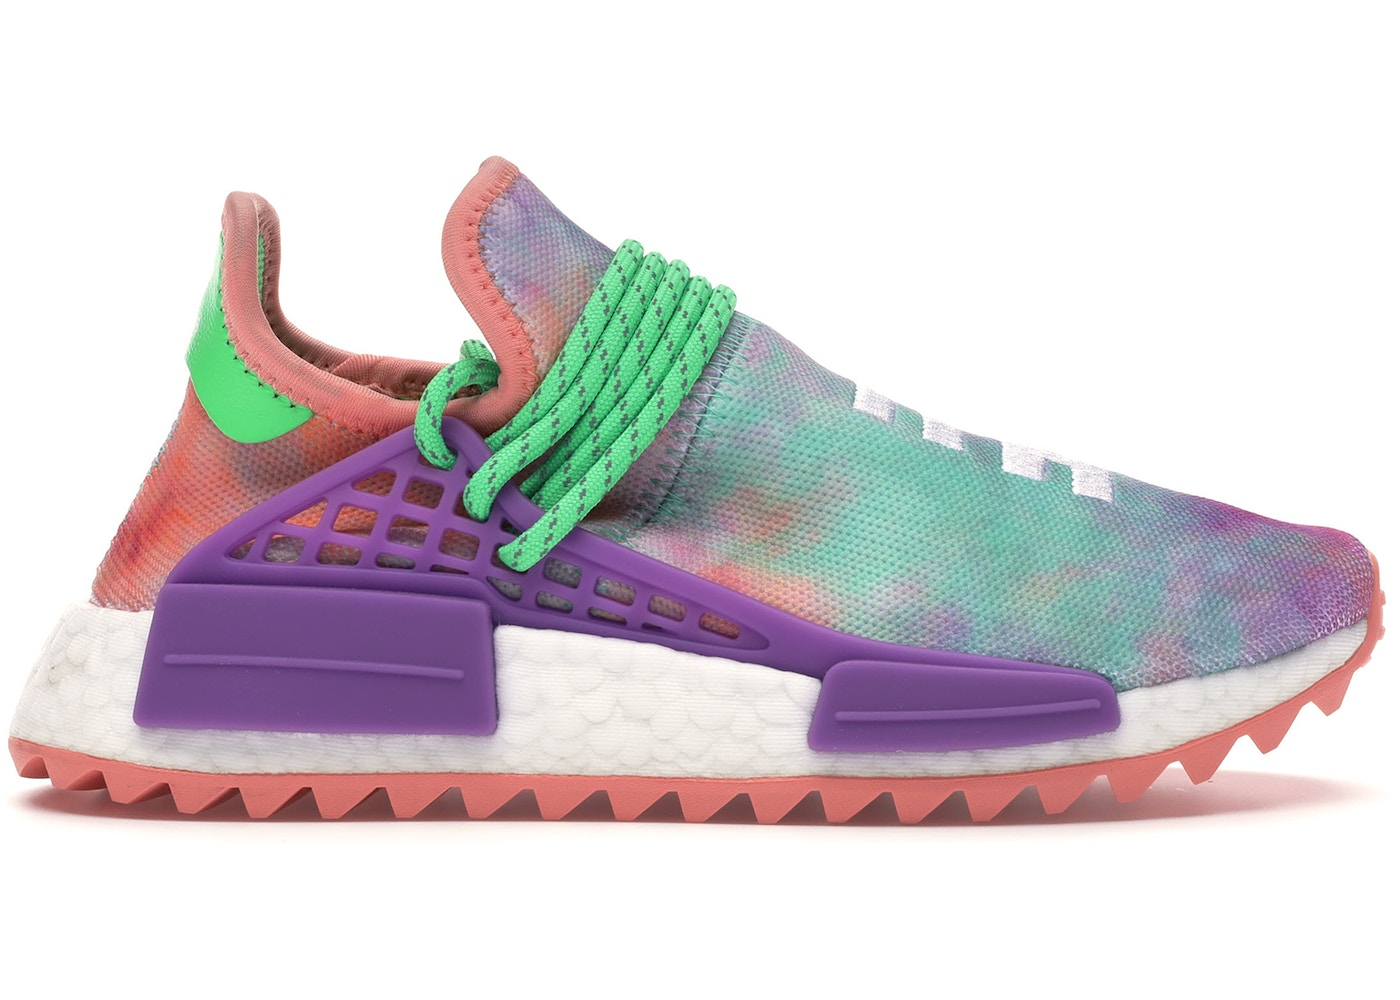 reputable site a74a2 41ce1 adidas Human Race NMD Pharrell Holi Festival (Chalk Coral)